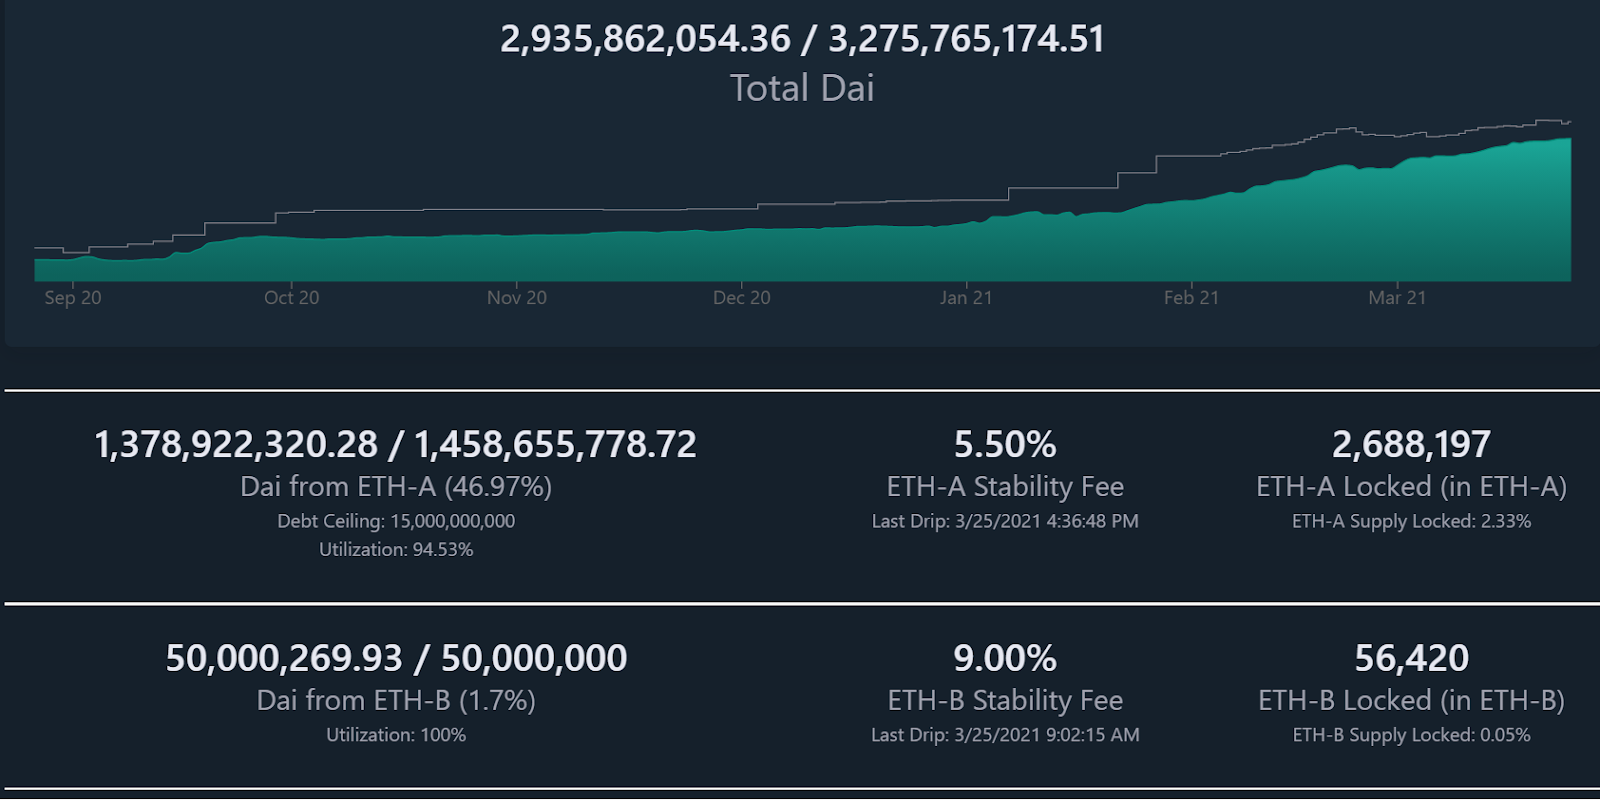 DaiStats.com is just one important MakerDAO governance tool that provides an accurate assessment of the Maker Protocol and Dai supply.